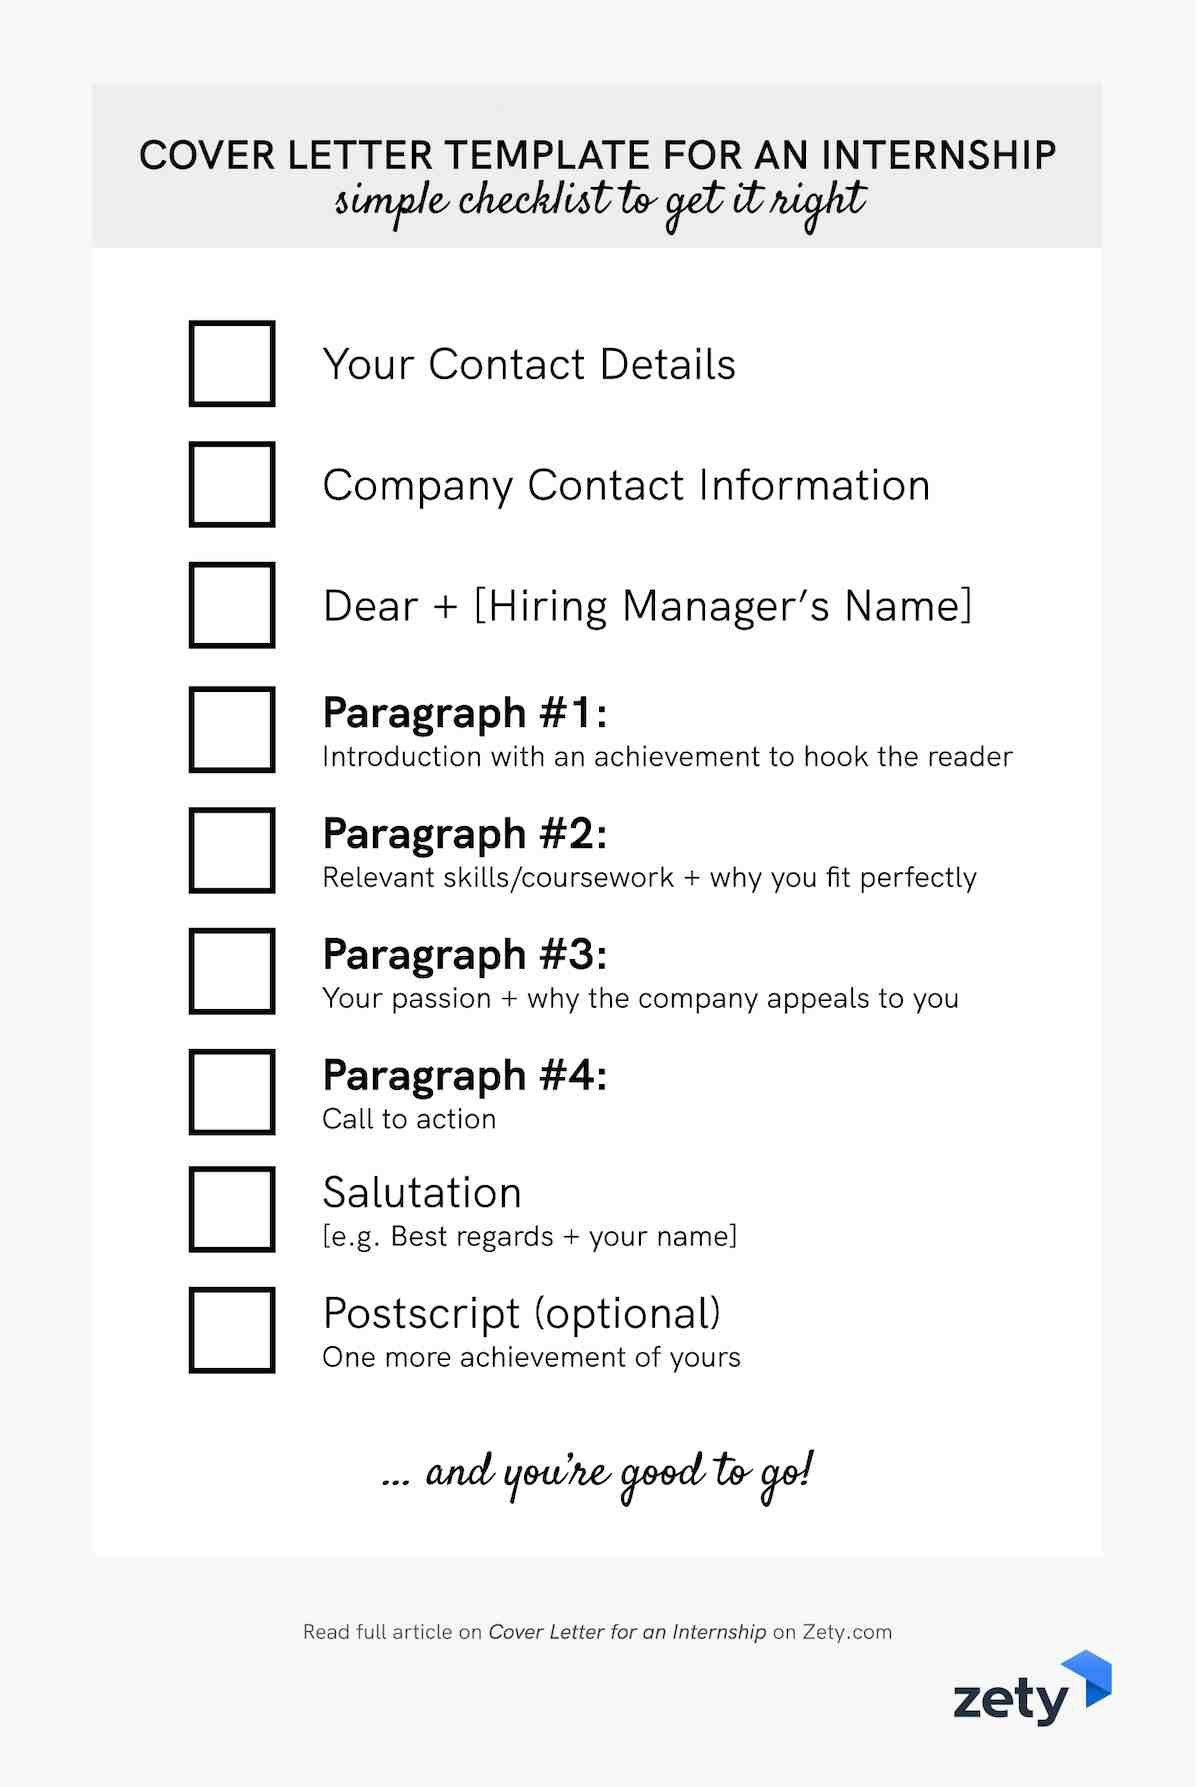 Cover letter template for an internship - checklist